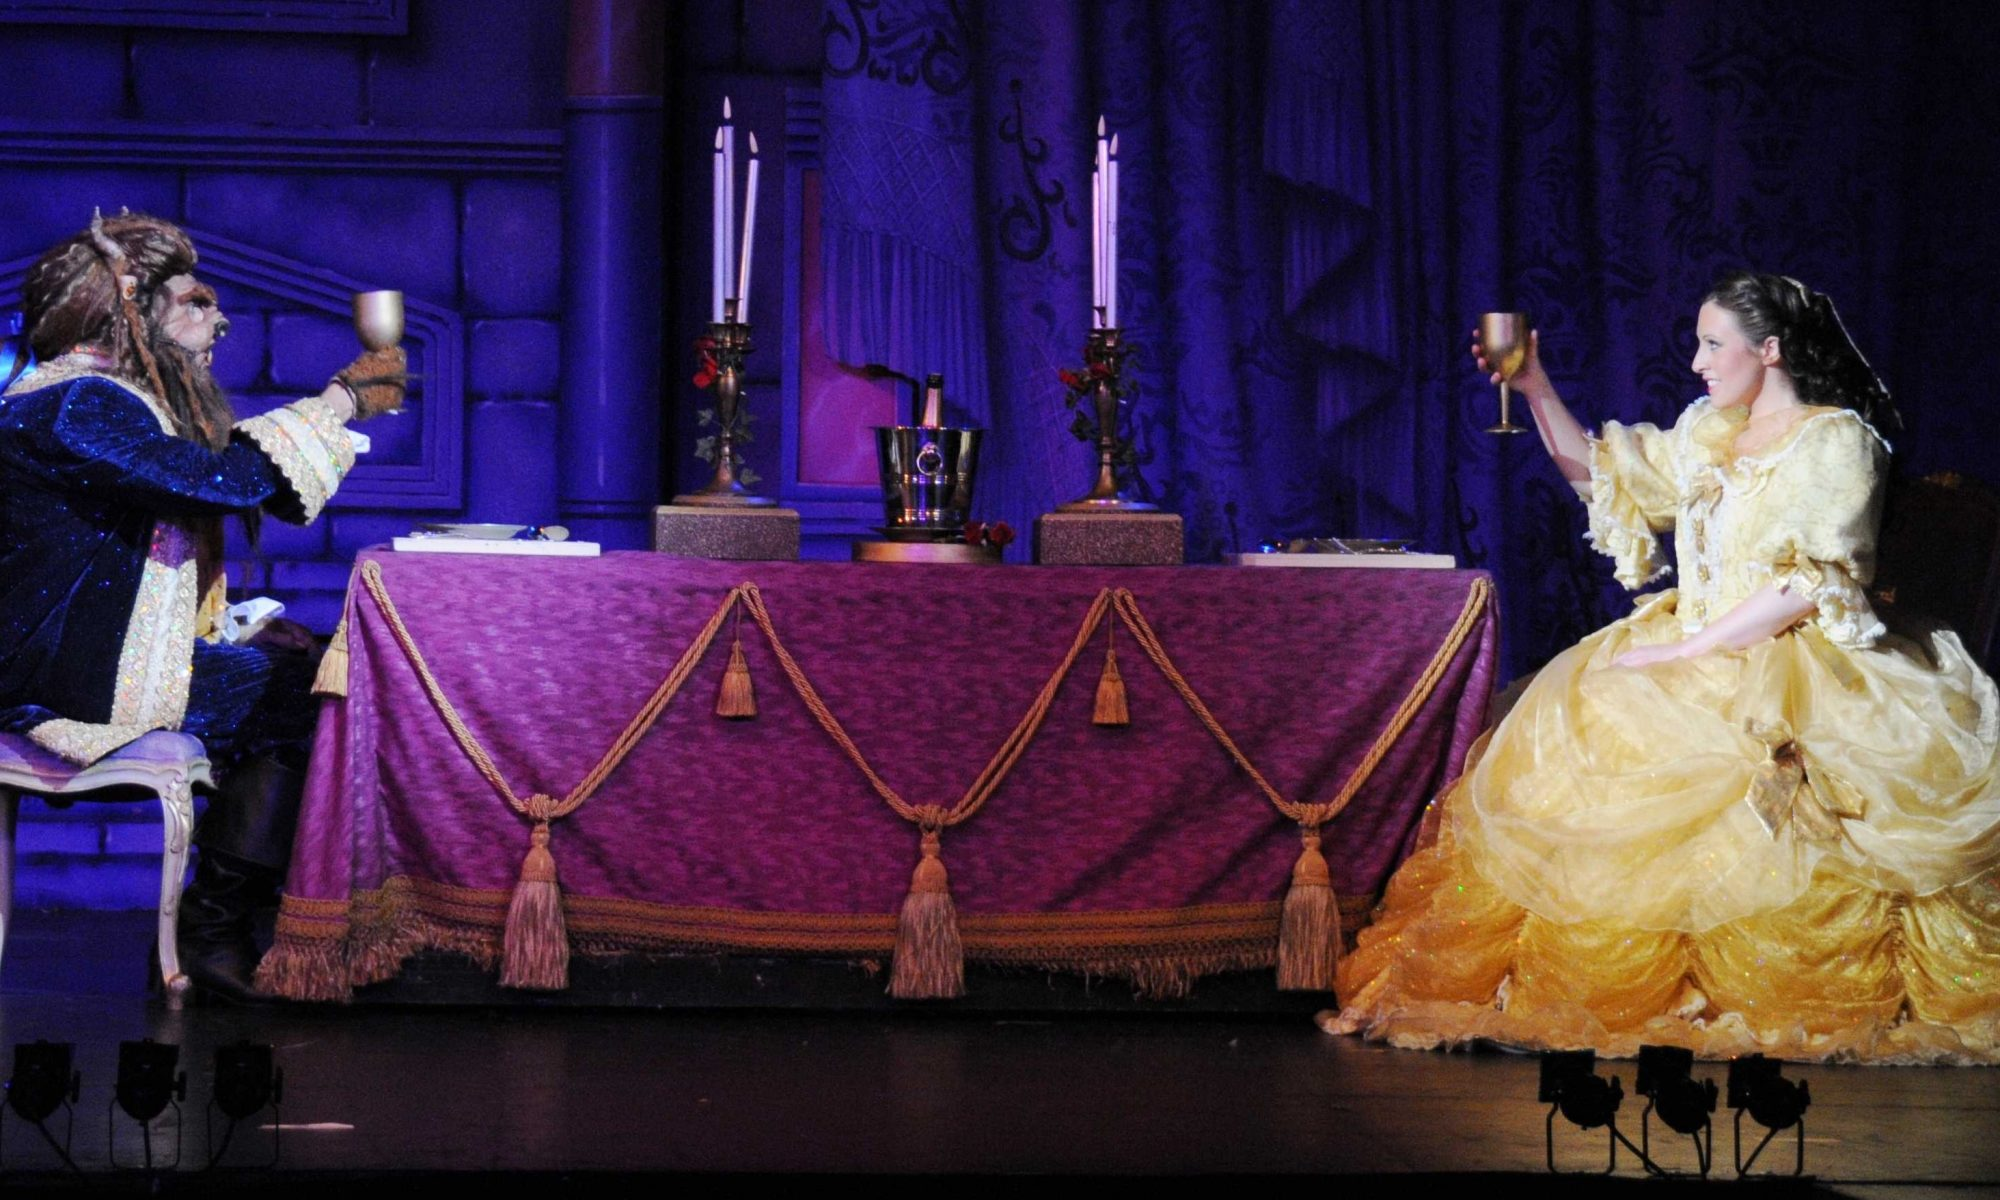 Belle and the Beast costumes by Costume Workshop